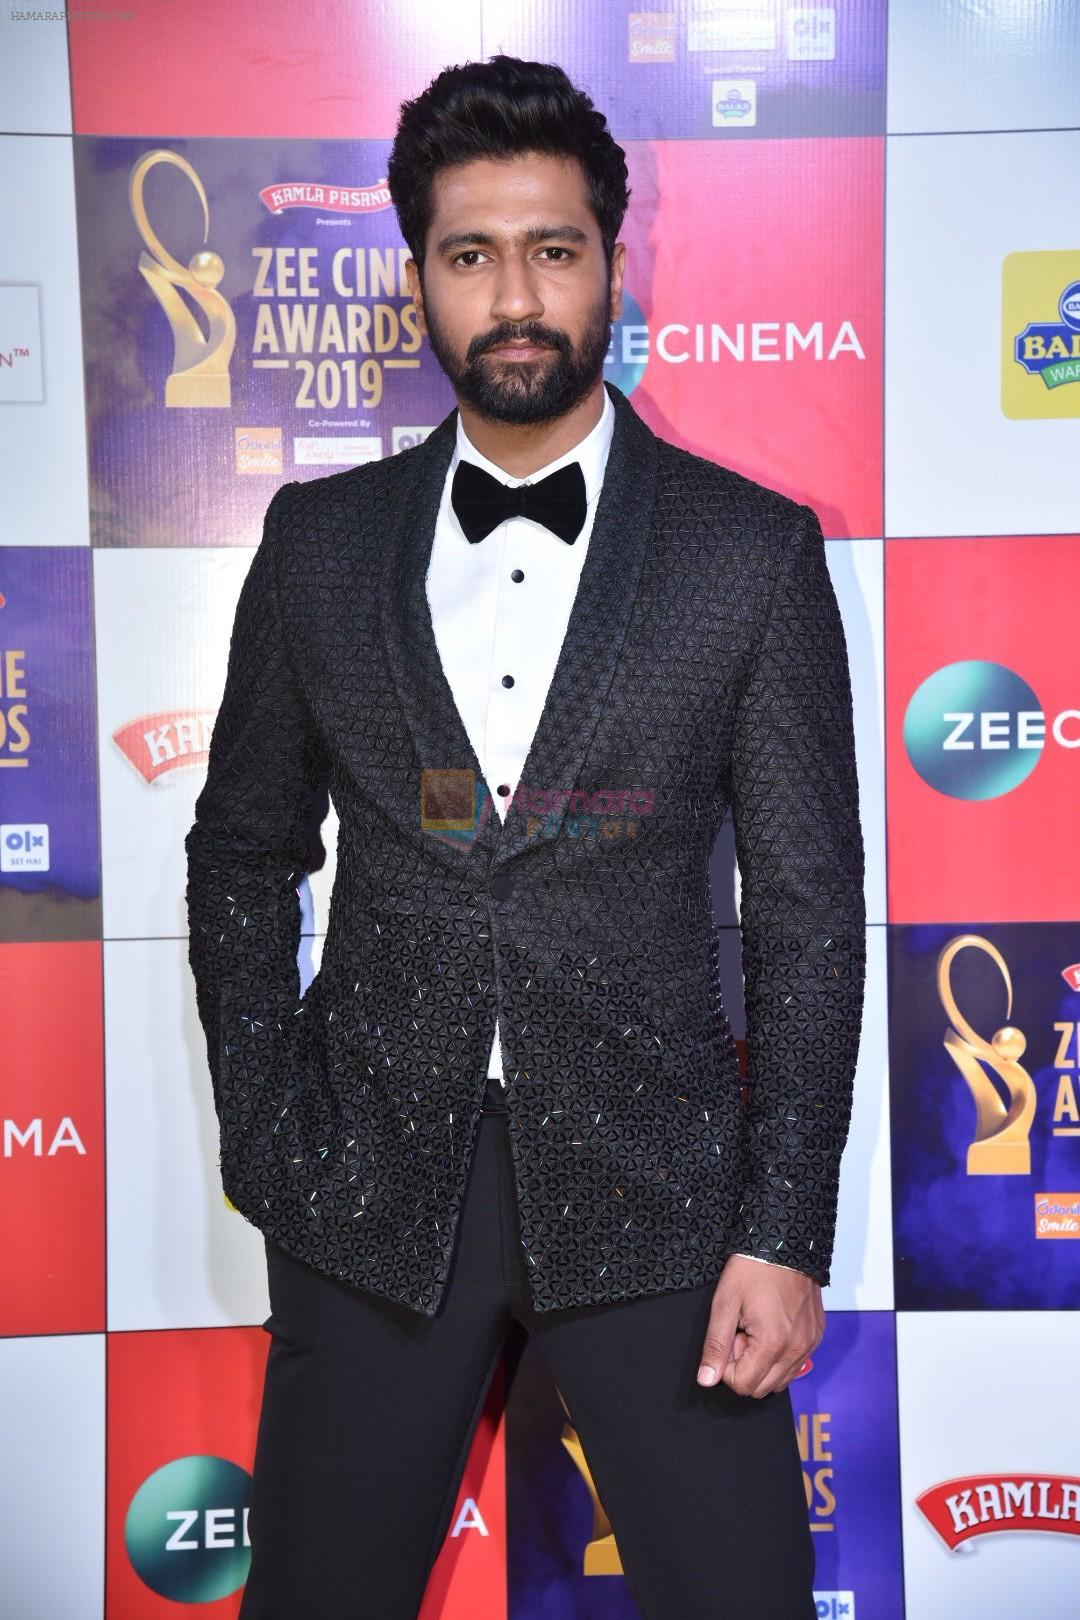 Vicky Kaushal at Zee cine awards red carpet on 19th March 2019